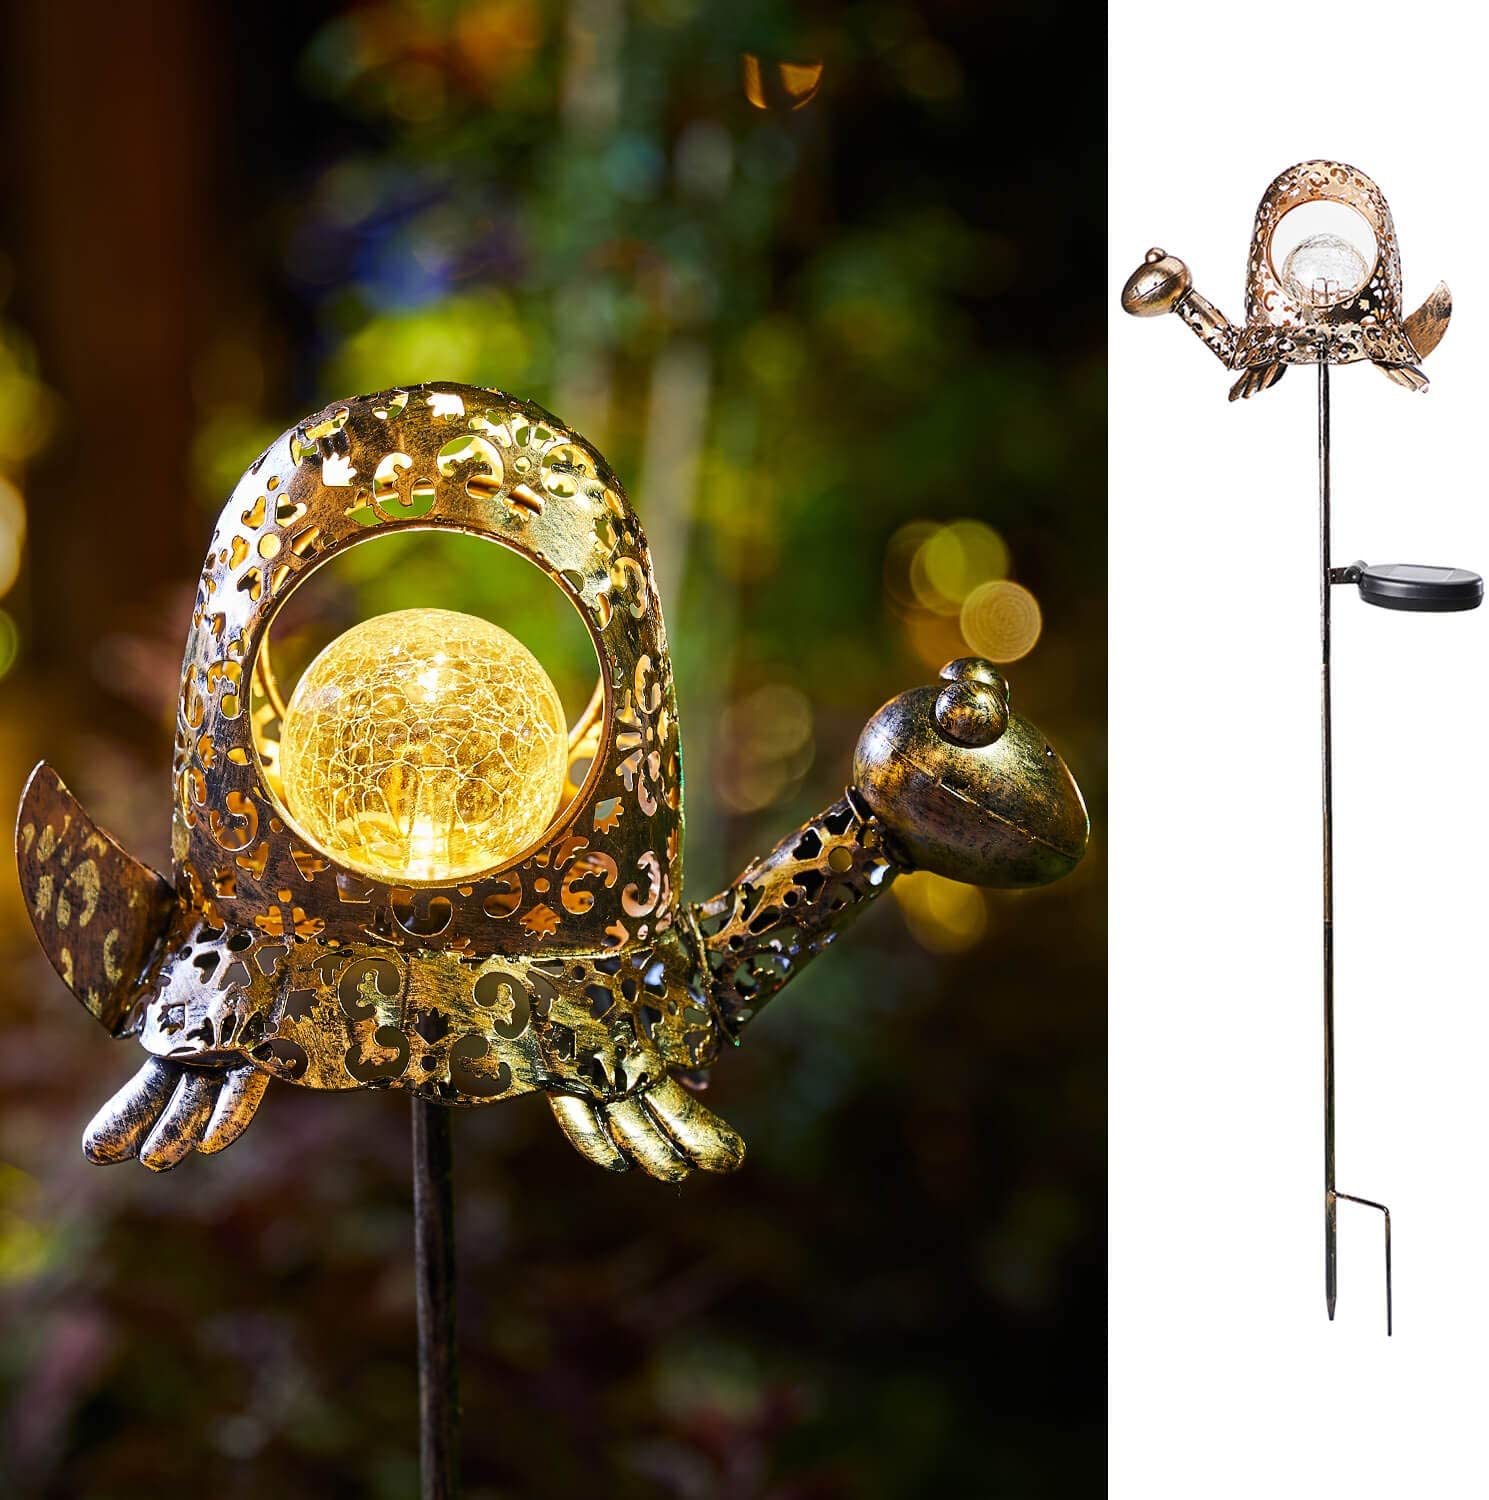 Solar Garden Decorative Lights Metal Turtle Outdoor Stakes Lighting for Courtyard, Lawn, Patio, Pathway Ornament(Bronze)